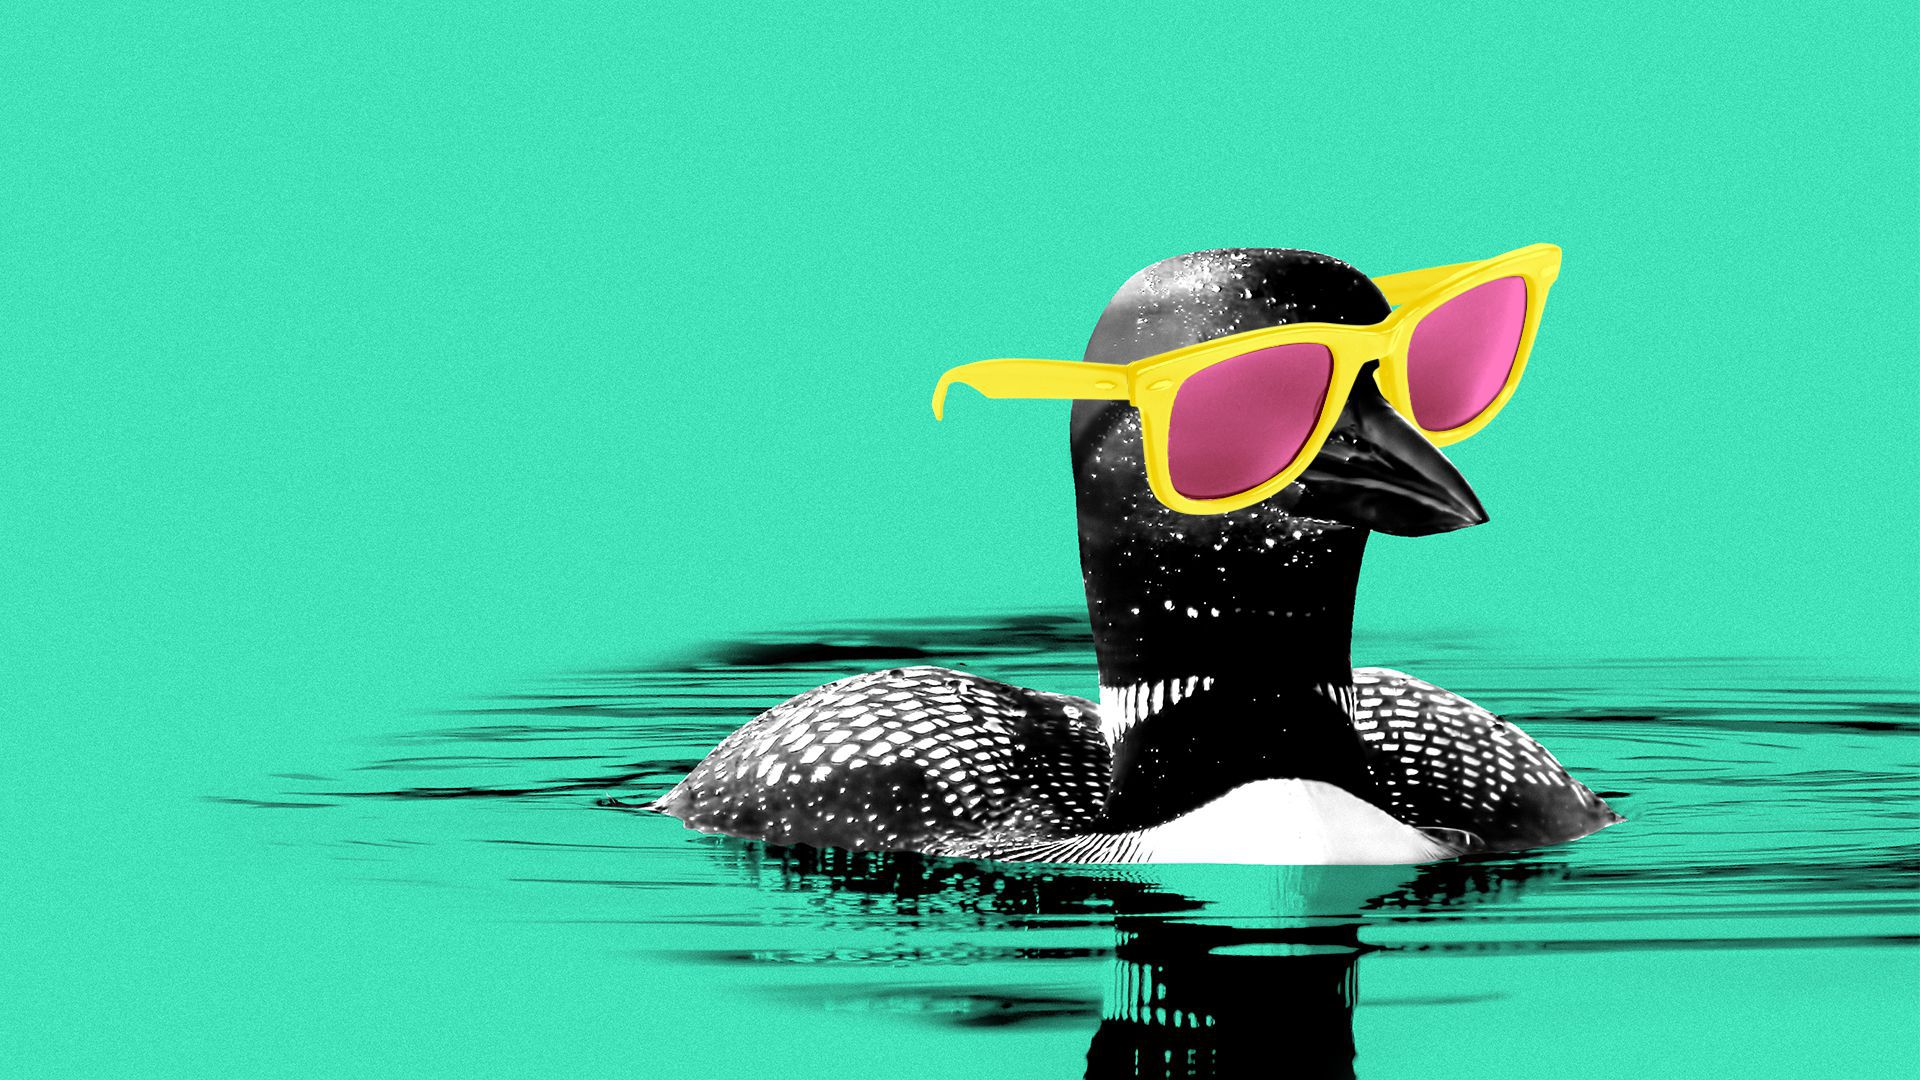 Illustration of a loon wearing sunglasses.